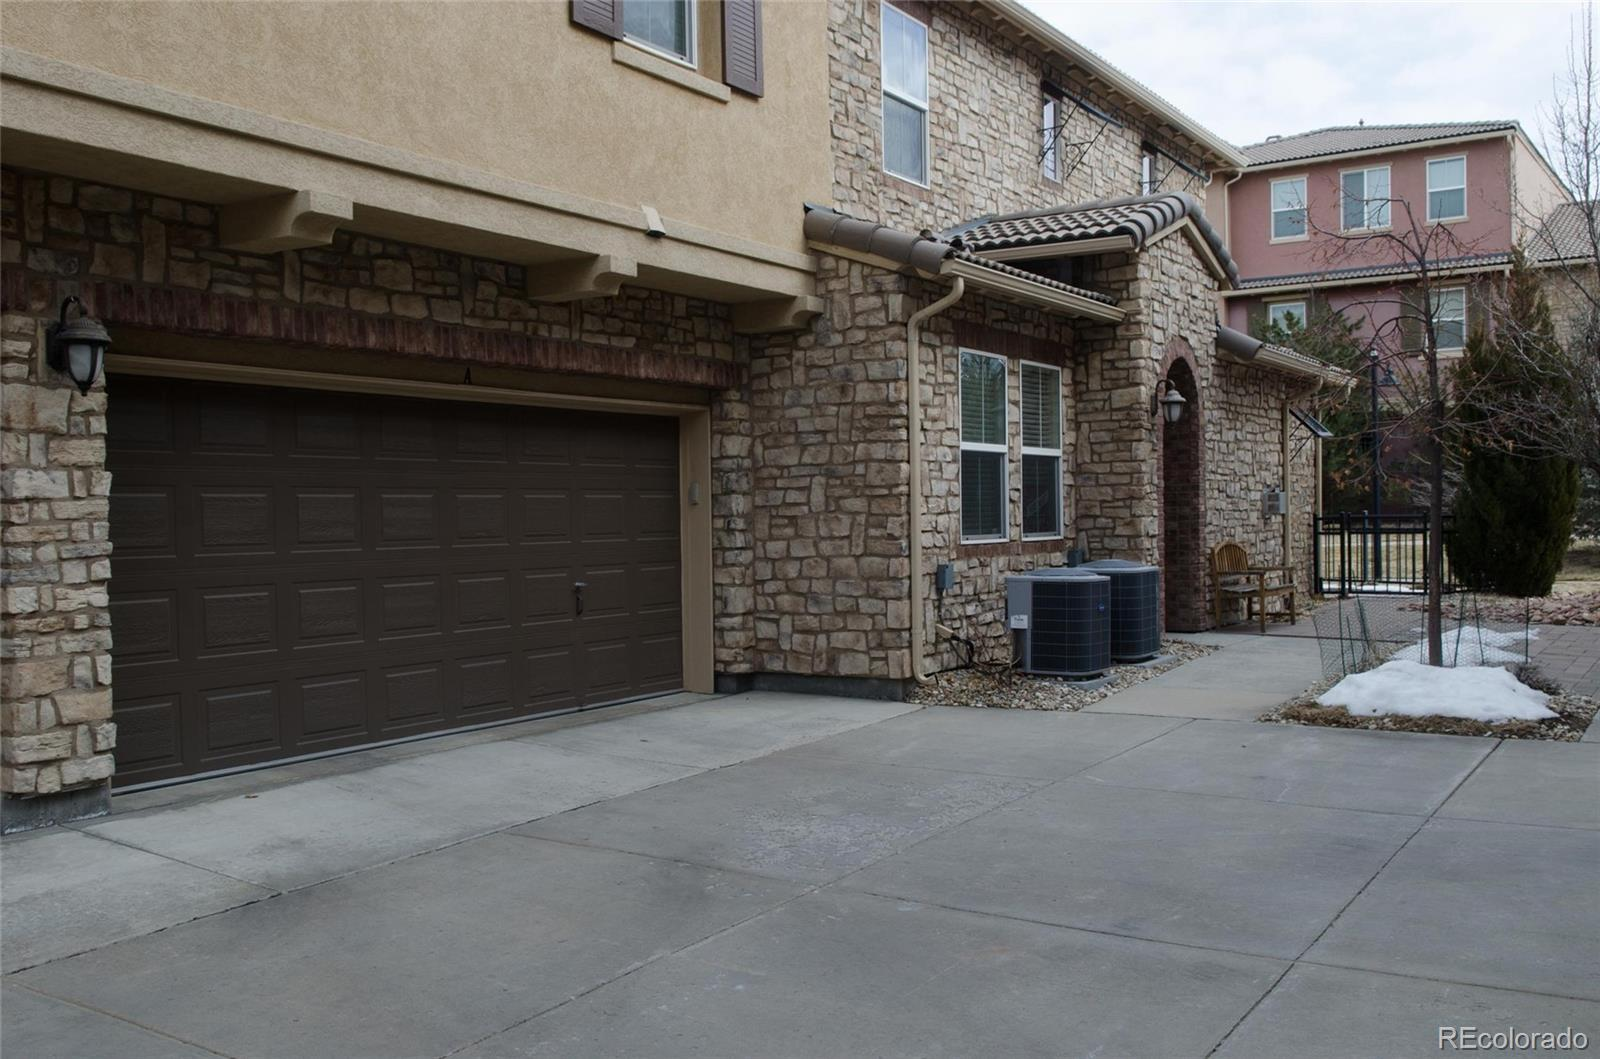 9362 Loggia Street #A, Highlands Ranch, CO 80126 - Highlands Ranch, CO real estate listing